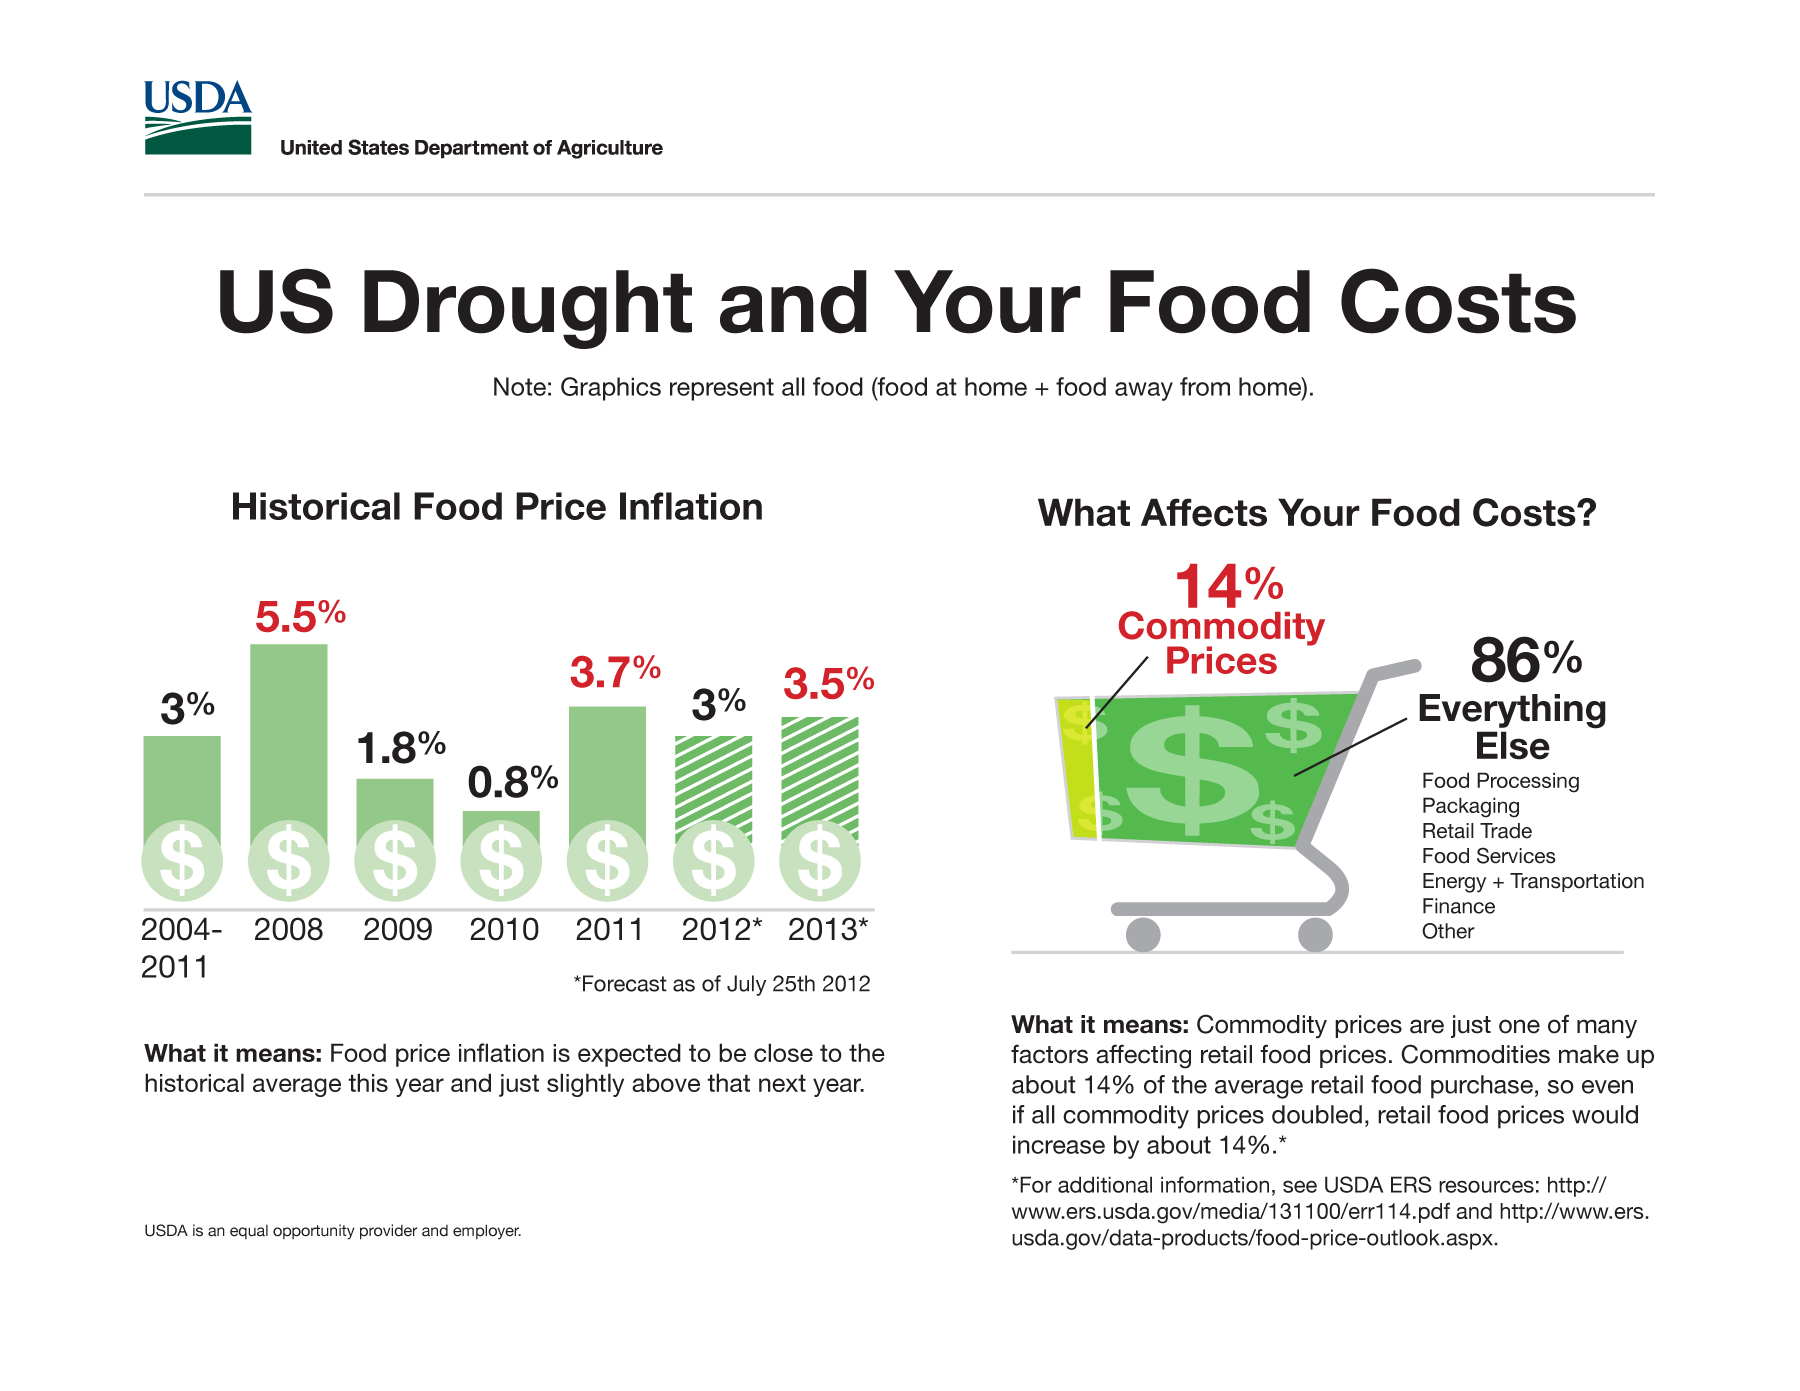 drought-infographic-food-costs (2) copy